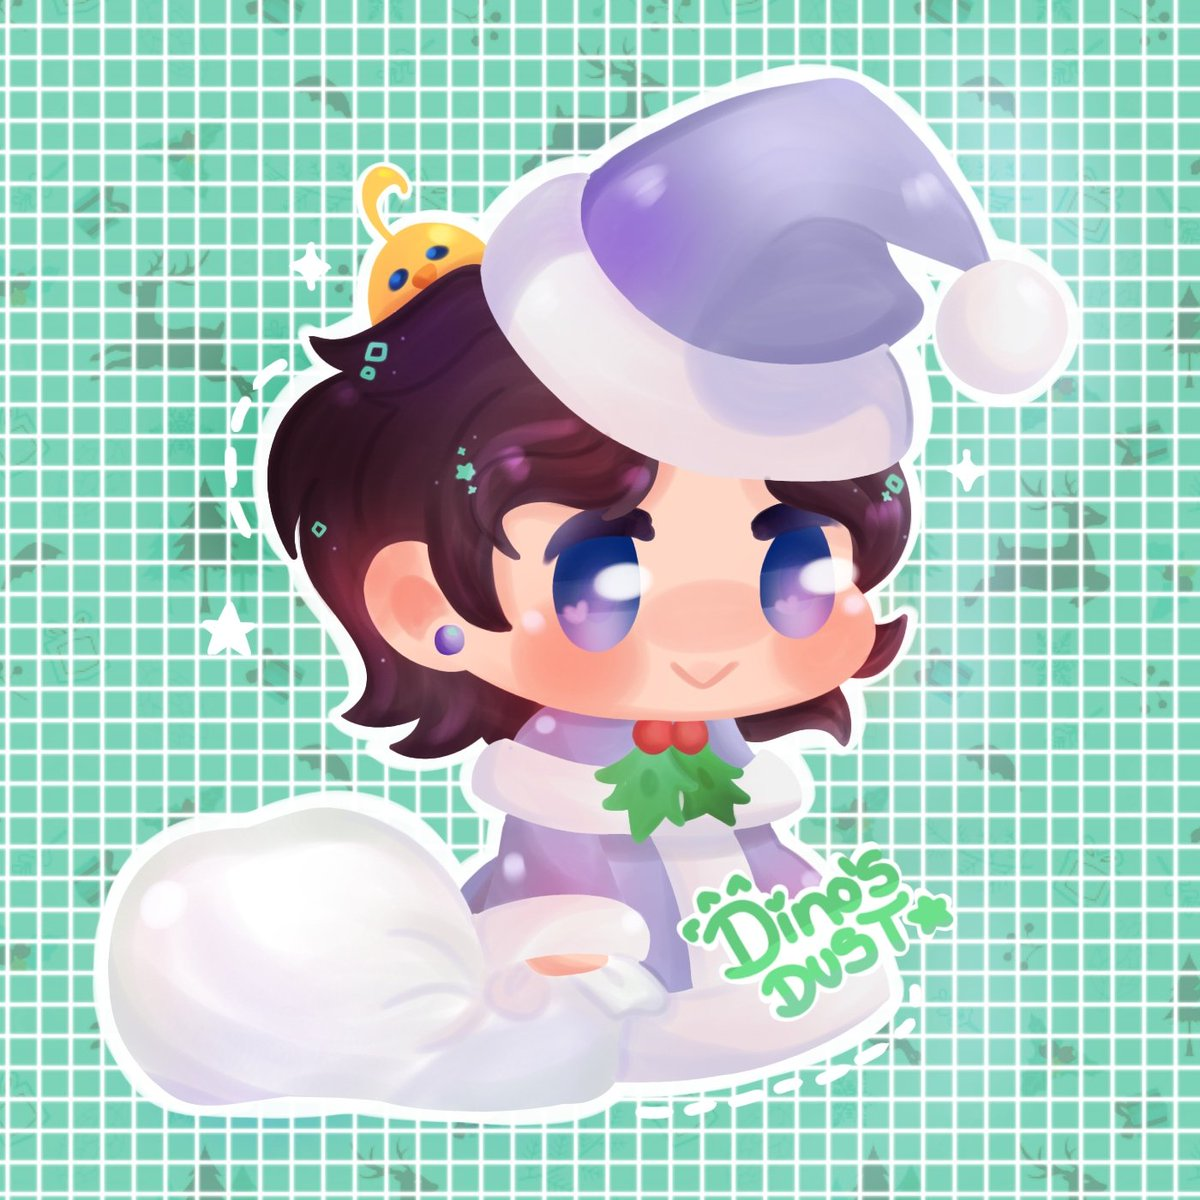 Hiiii💚  I am making padorus commissions like this for $4.50 and sketch with 1 color for $2.30👀🌈 very nice and cute u,w,u  🌸 You help me a lot if you share to reach more people 🌸  #padoru #digitalart #chibiart #chibi  #commissionsopen #drawing #colorart #Navidad #Christmas